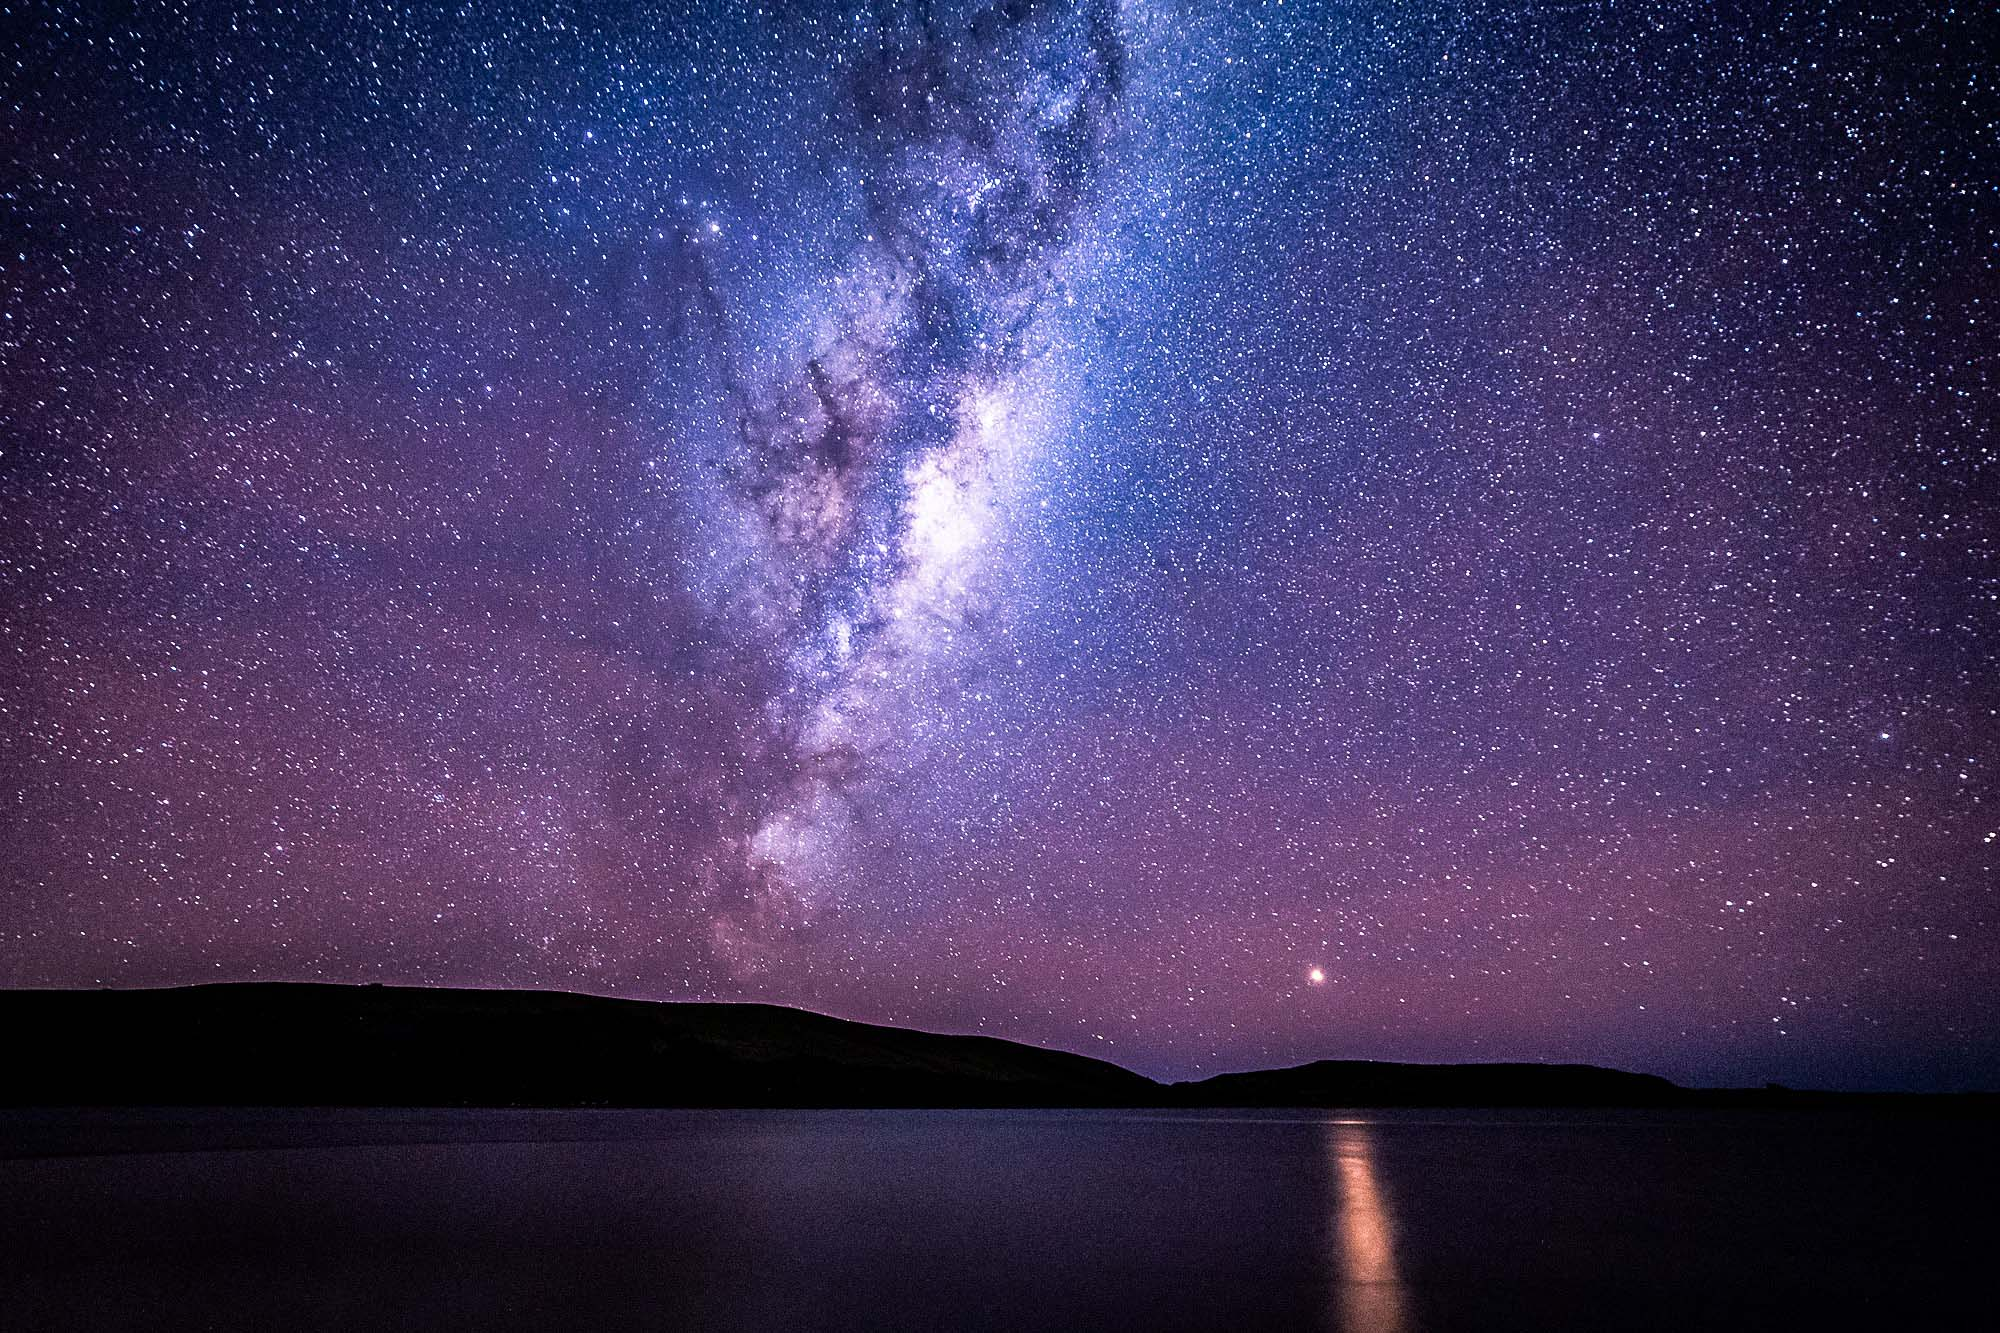 Heres a Milky Way shot I took a while back in Maleny